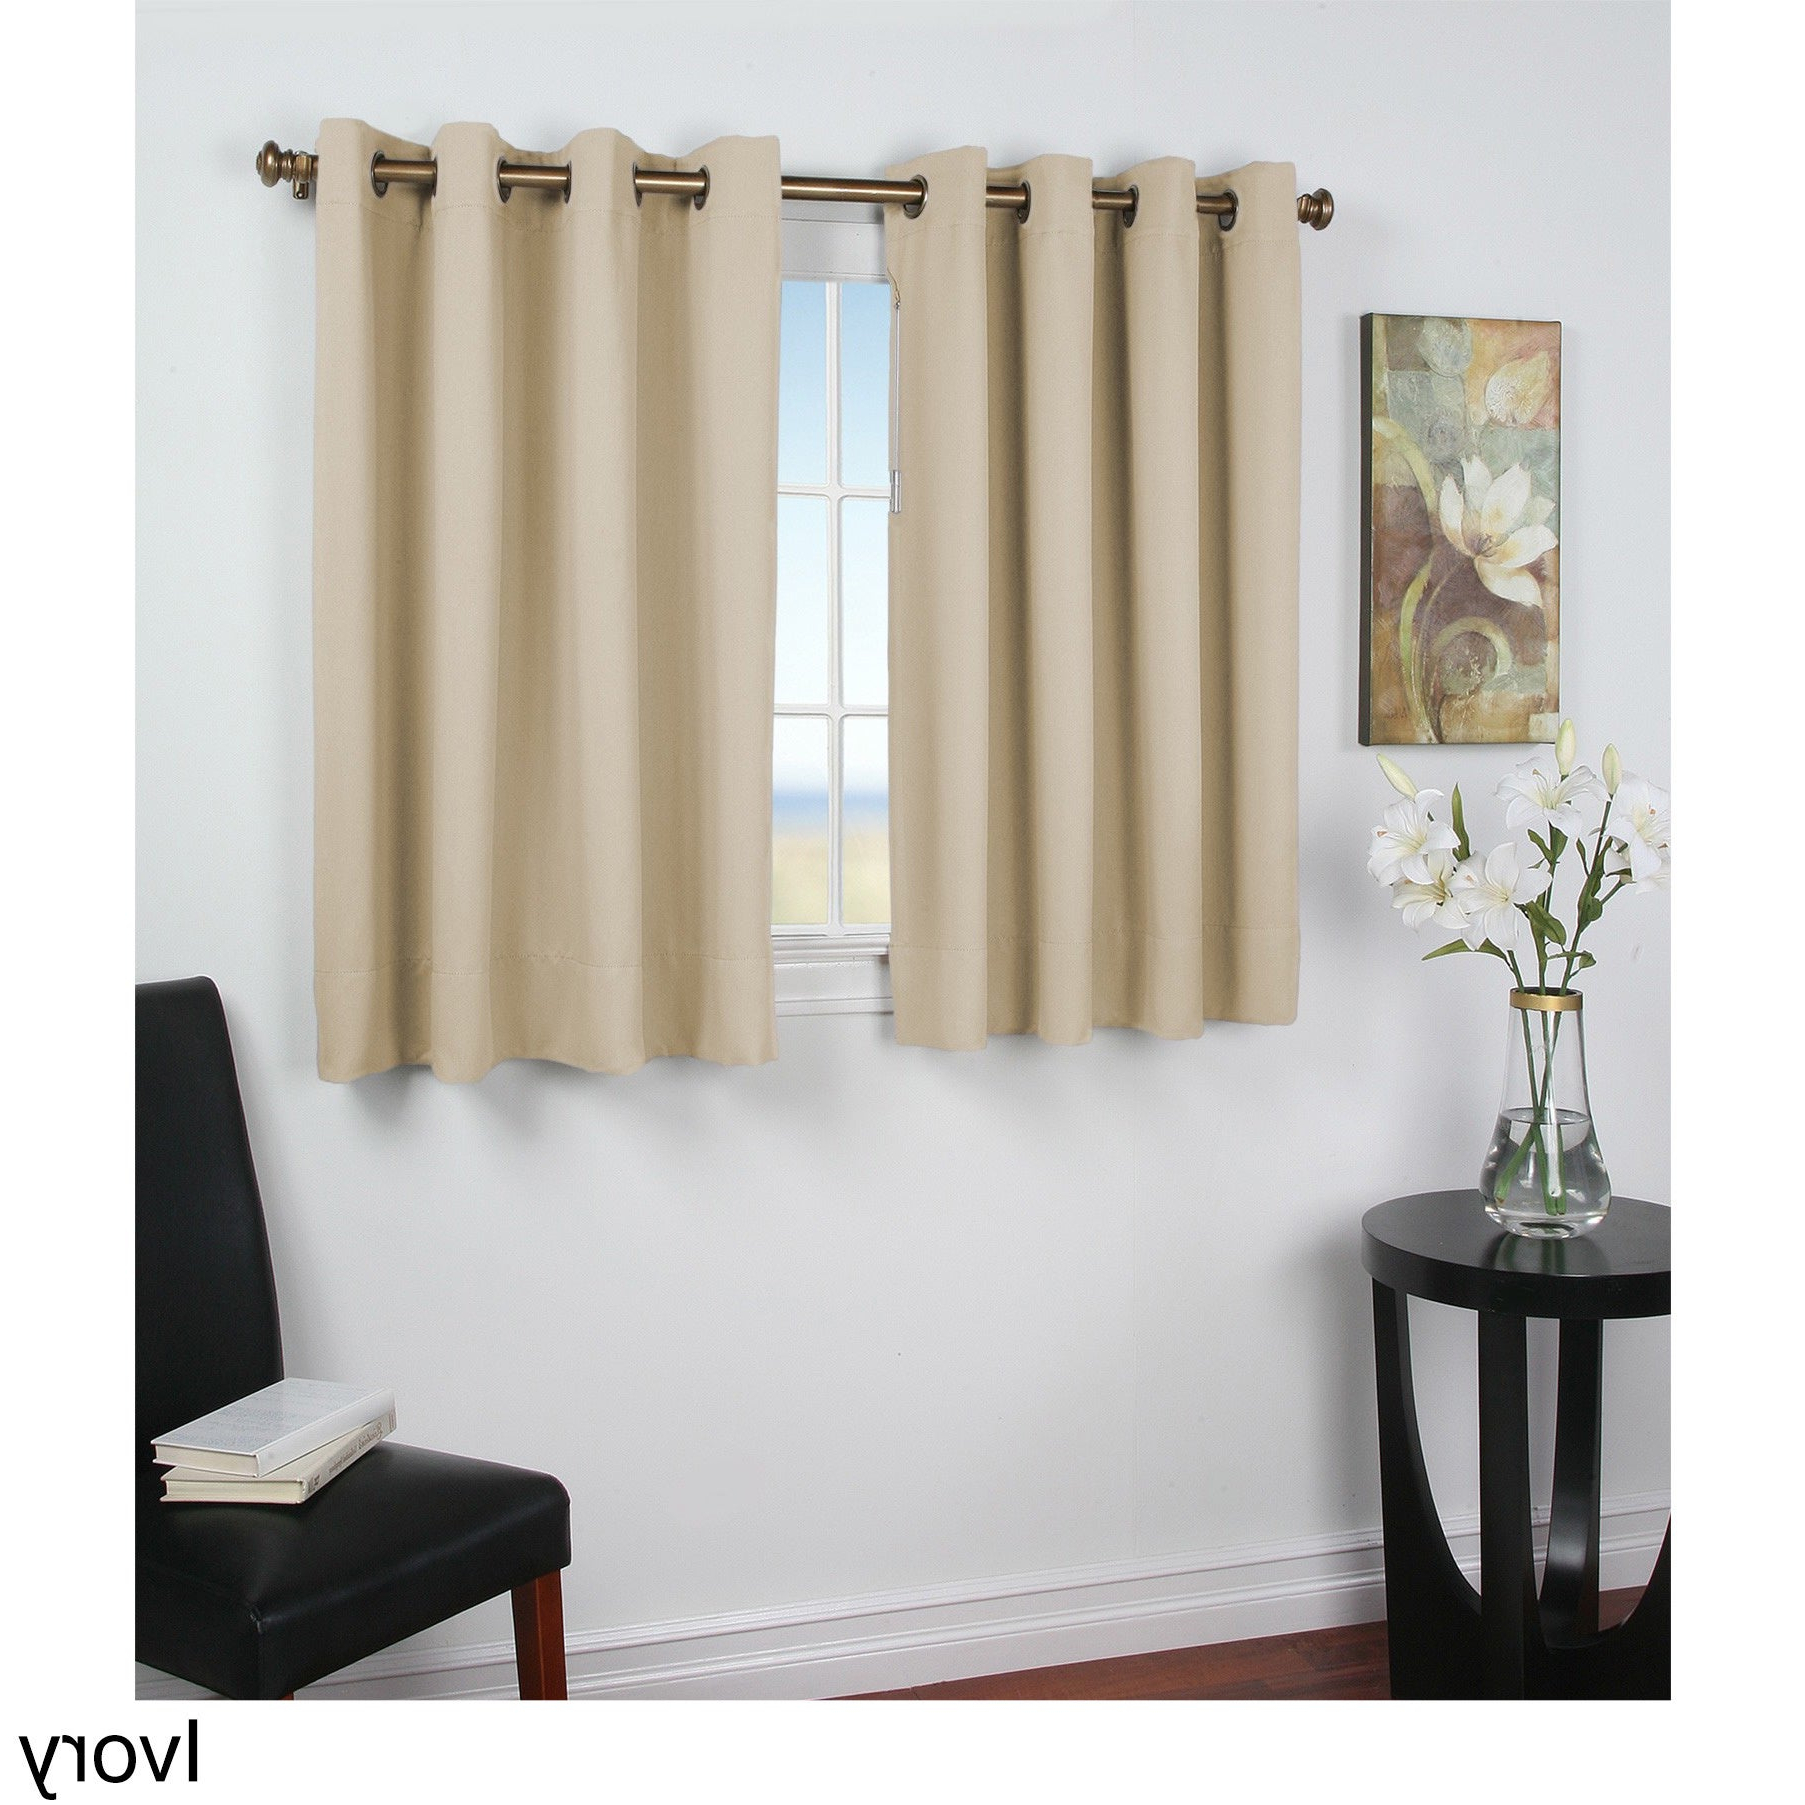 Ultimate Blackout Short Length Grommet Curtain Panels Intended For Widely Used Ultimate Blackout 45 Inch Short Length Grommet Curtain Panel (Gallery 2 of 20)